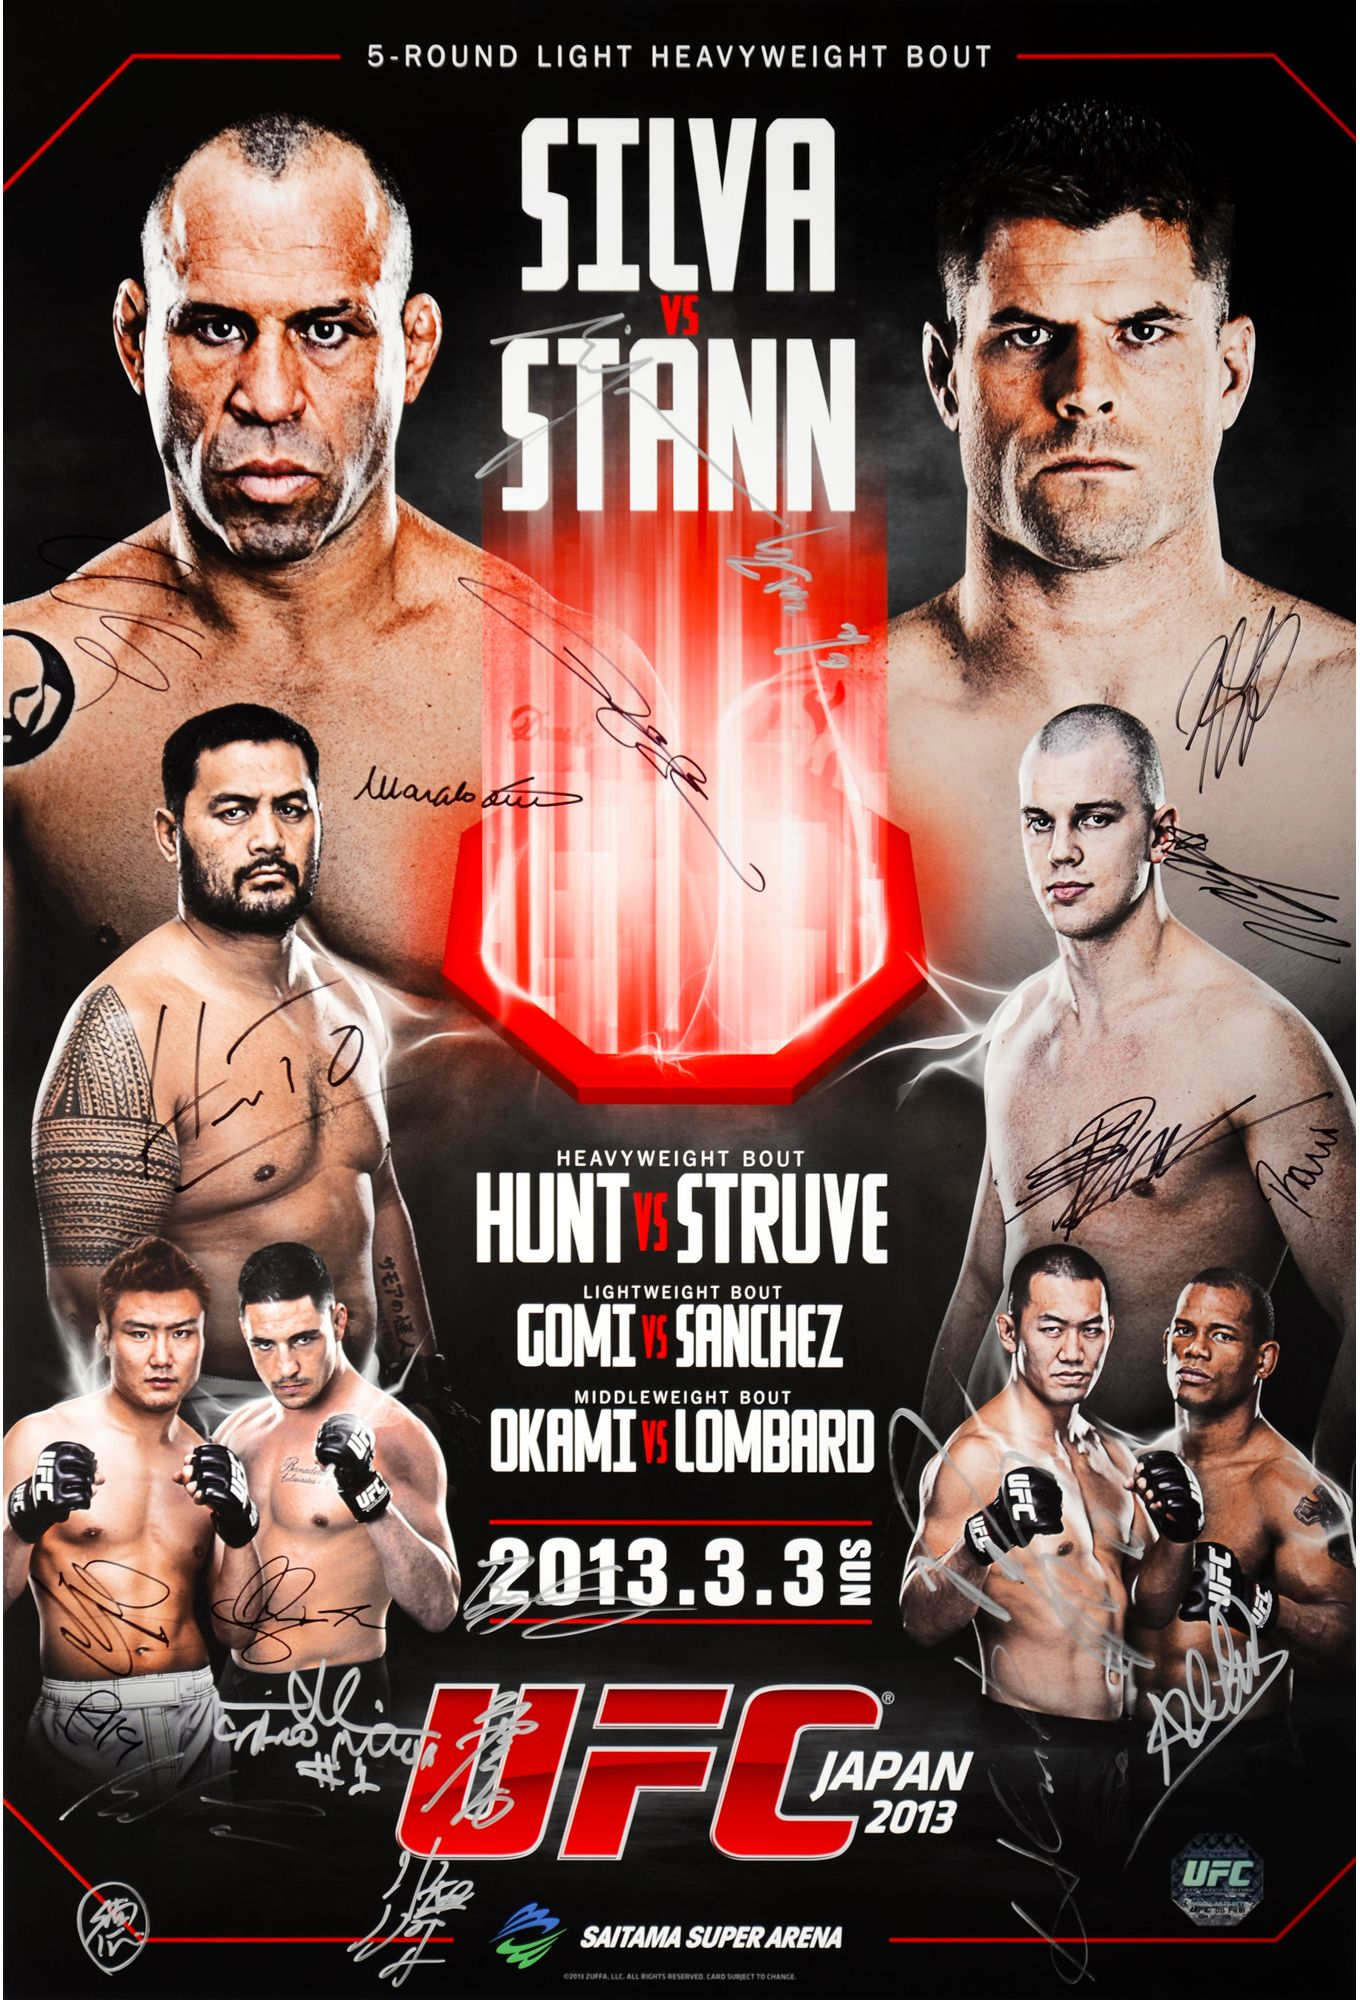 click to zoom Ufc, Event poster, Ufc poster